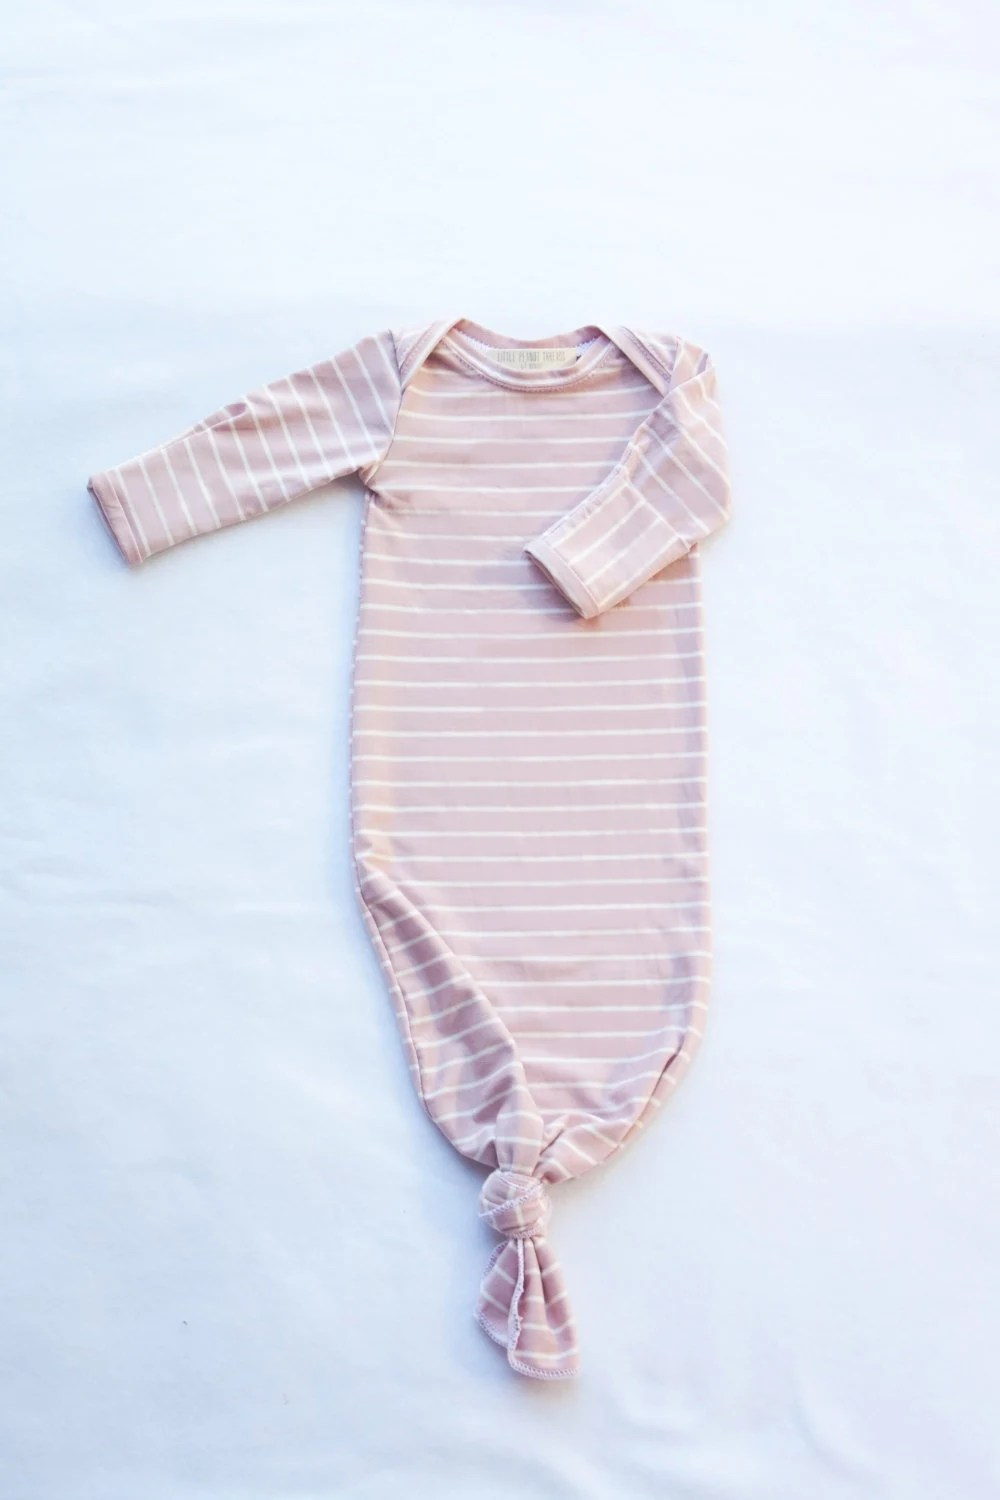 Sleeper Gowns Newborn With Name